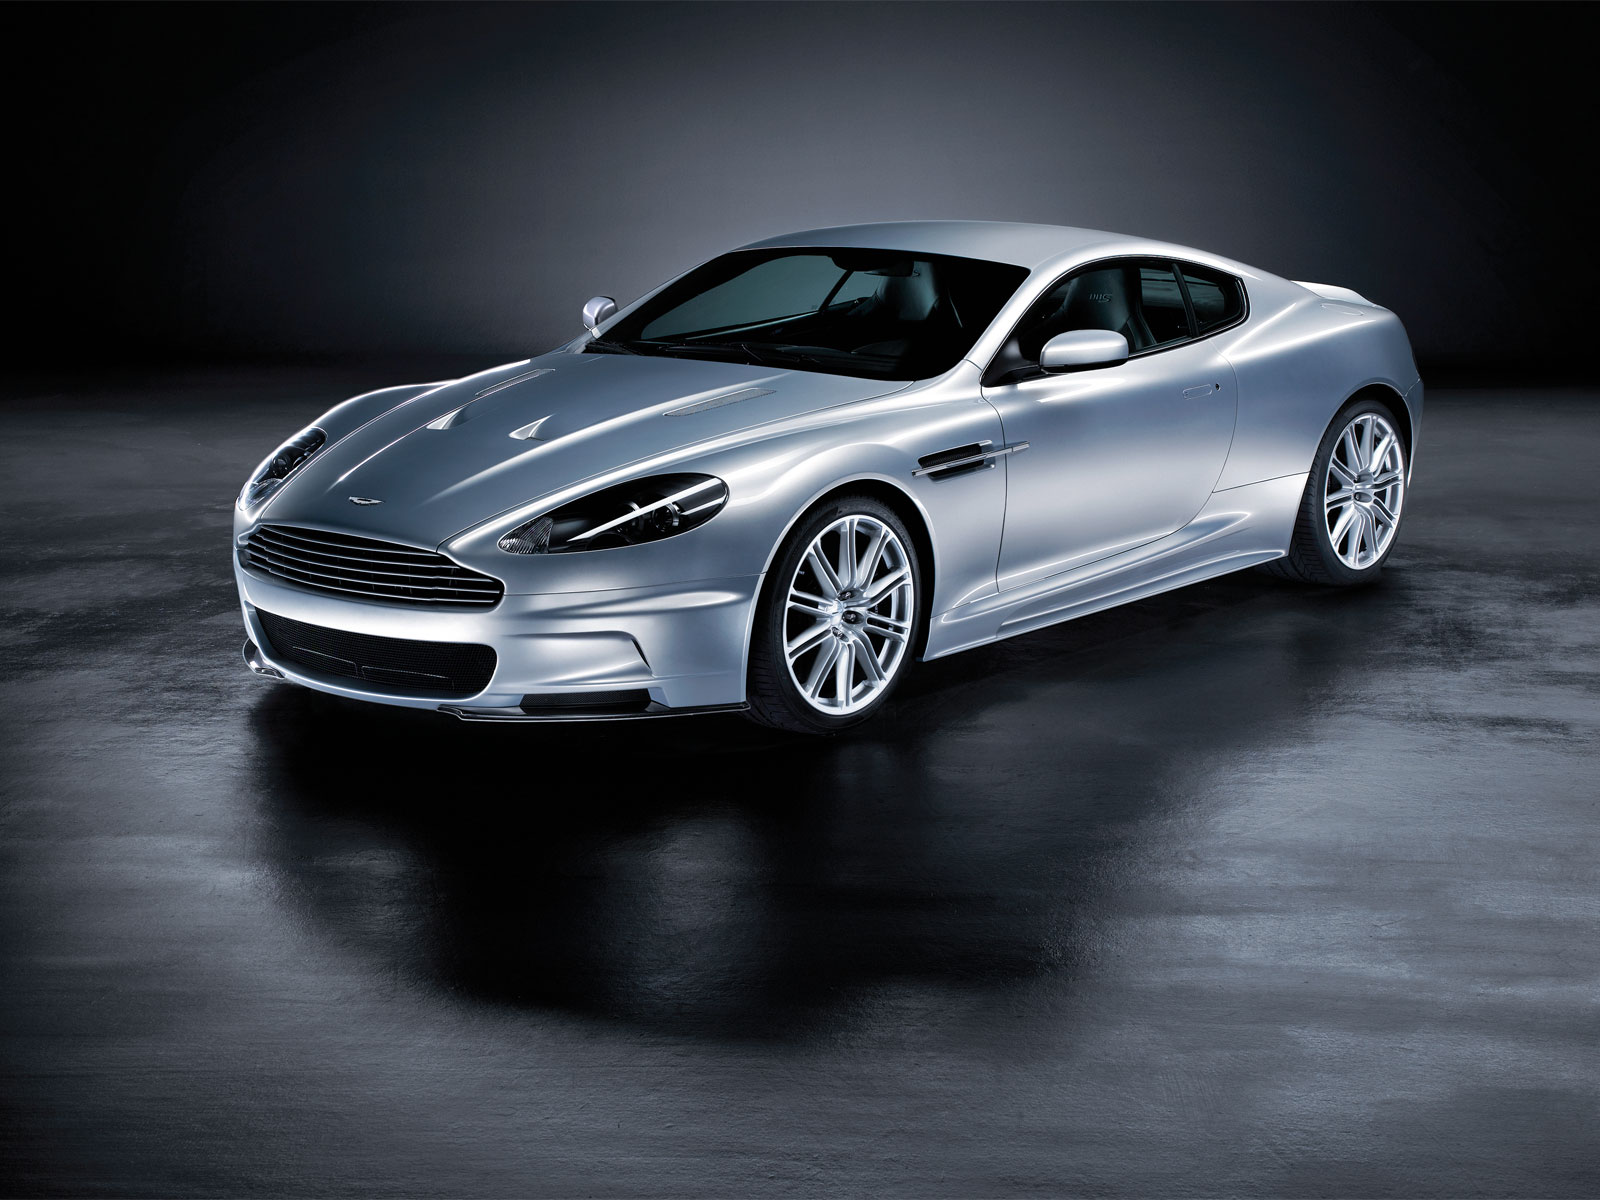 New Top 10 sports cars pictures